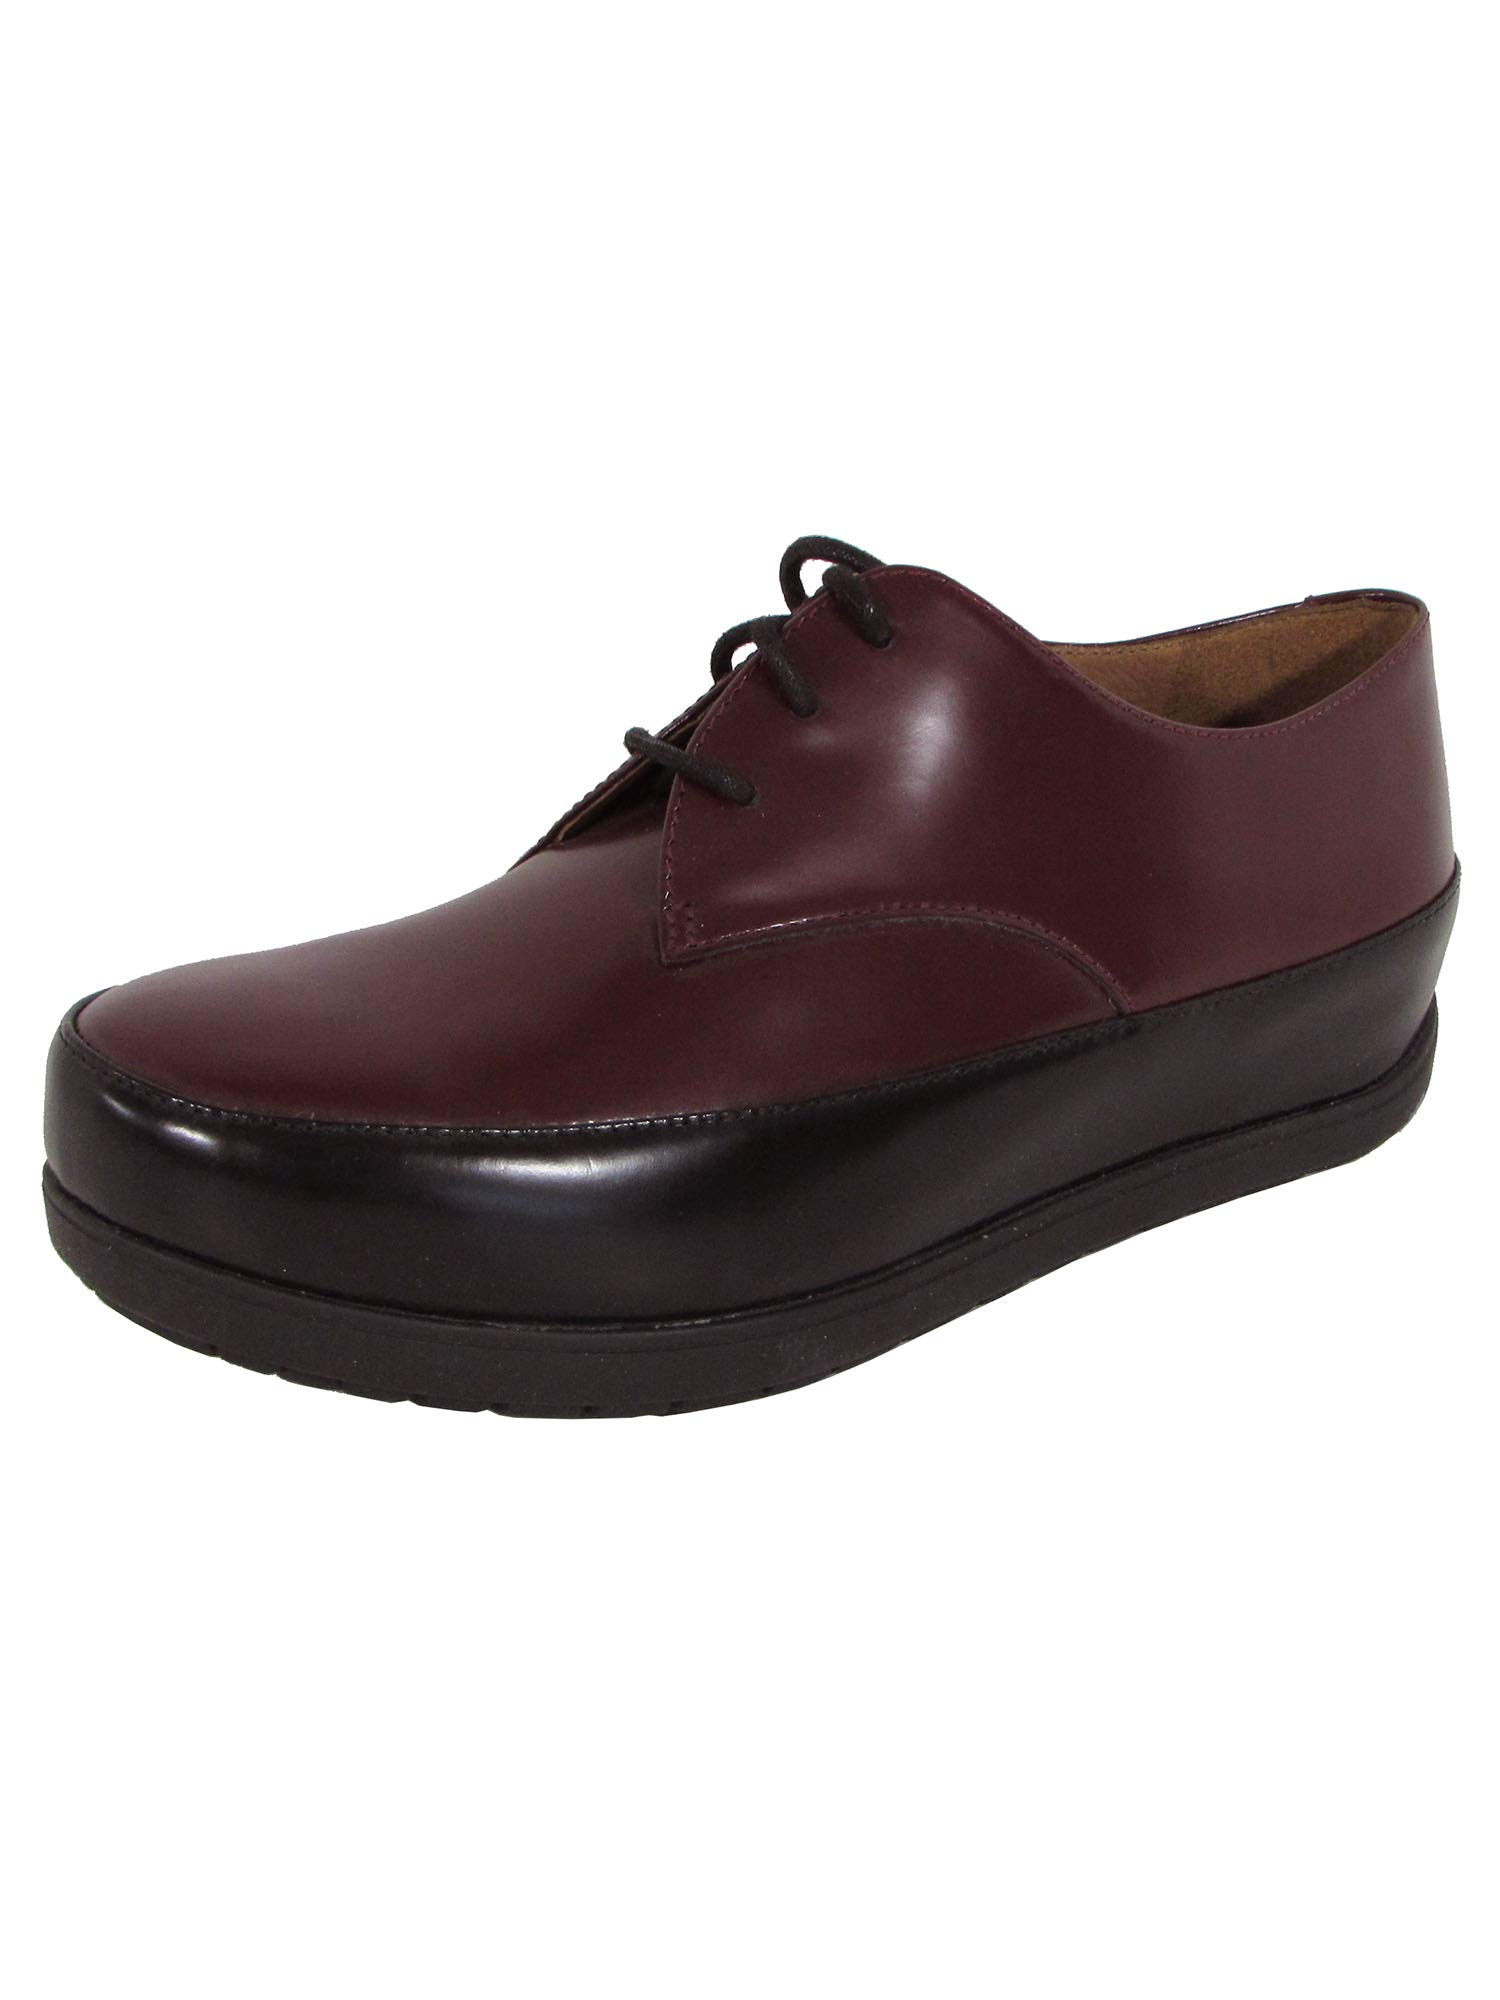 FitFlop 421 Womens Beau Derby Dress Shoes, Hot Cherry - 7.5